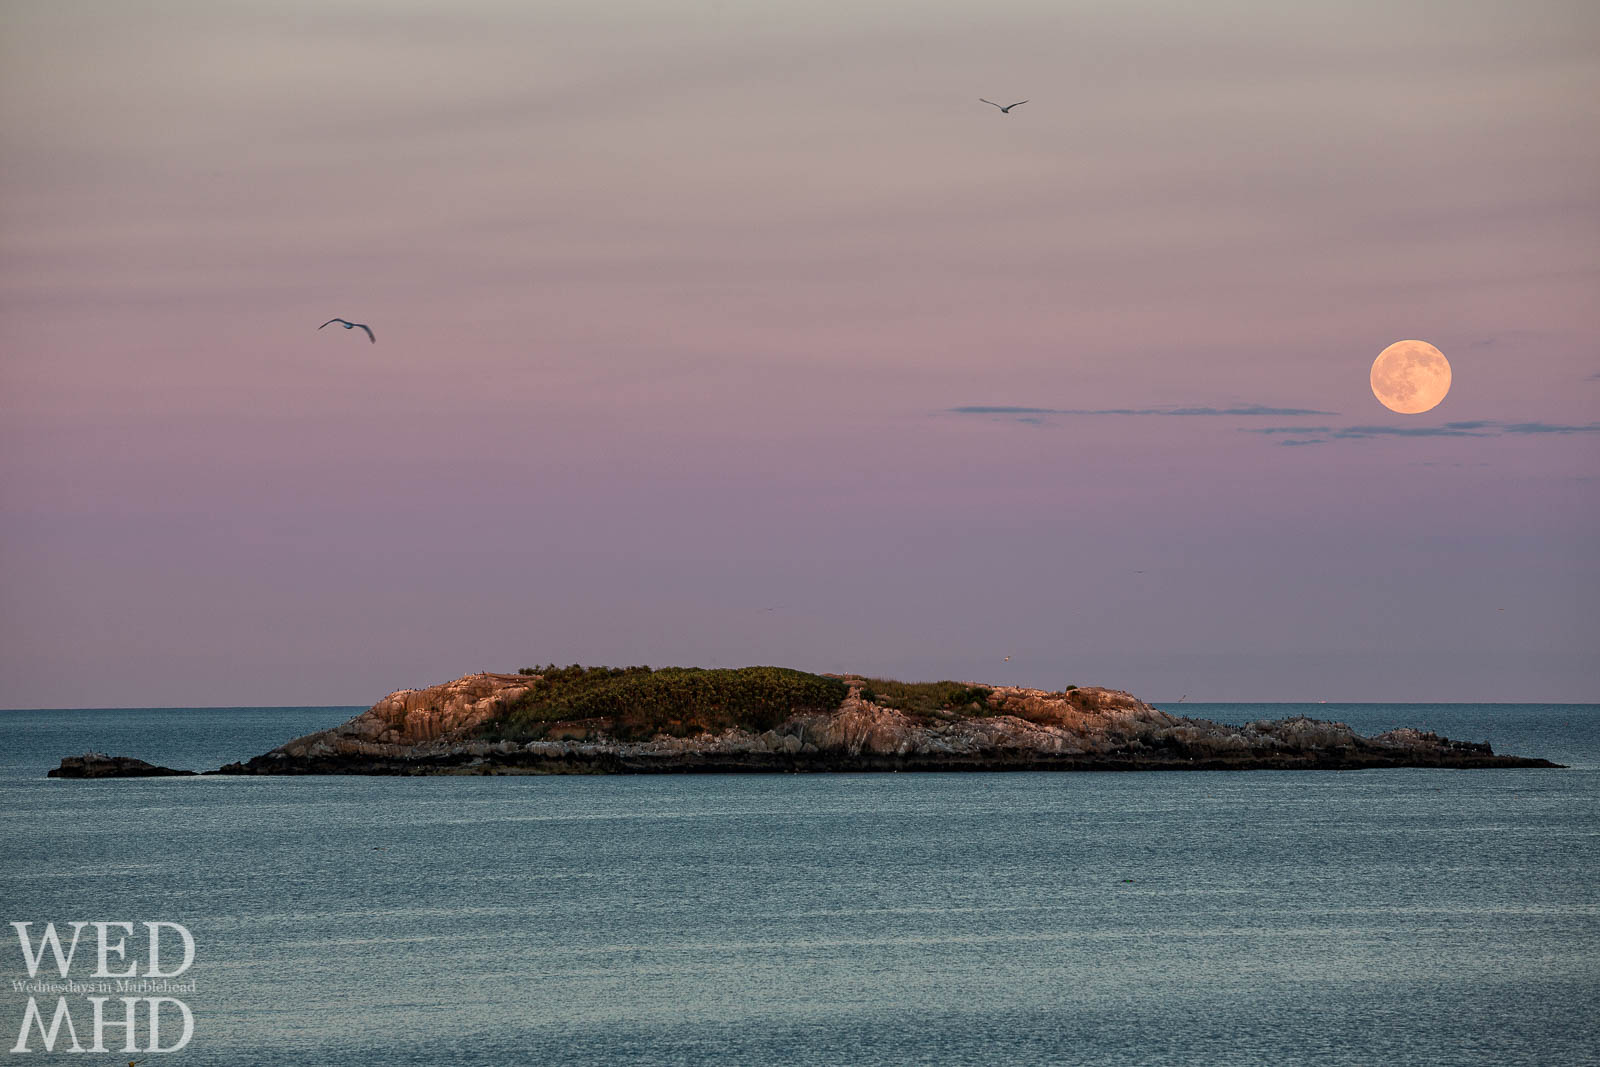 July's full Buck moon rises over Ram's island in Marblehead